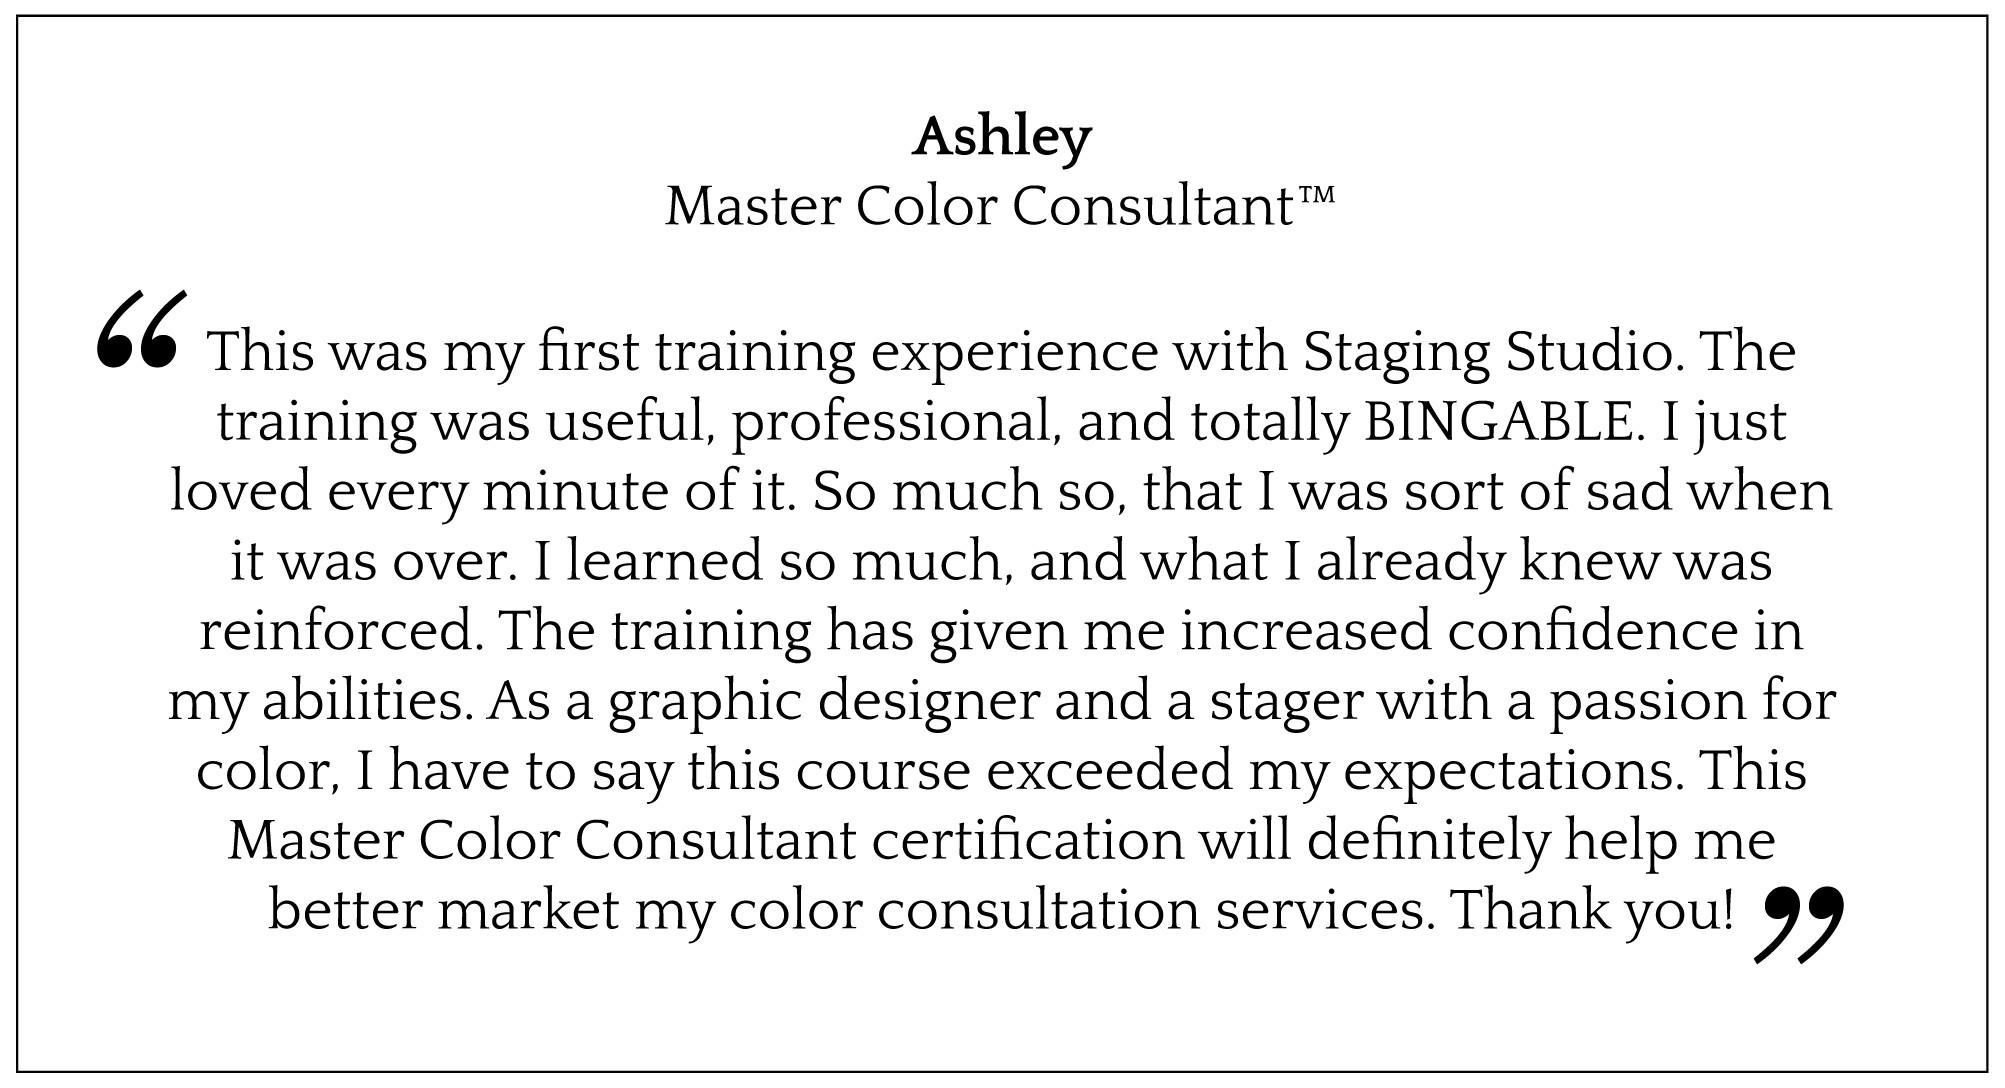 This was my first training experience with Staging Studio. The training was useful, professional, and totally BINGABLE. I just loved every minute of it. So much so, that I was sort of sad when it was over. I learned so much, and what I already knew was reinforced. The training has given me increased confidence in my abilities. As a graphic designer and a stager with a passion for color, I have to say this course exceeded my expectations. This Master Color Consultant certification will definitely help me better market my color consultation services. Thank you!